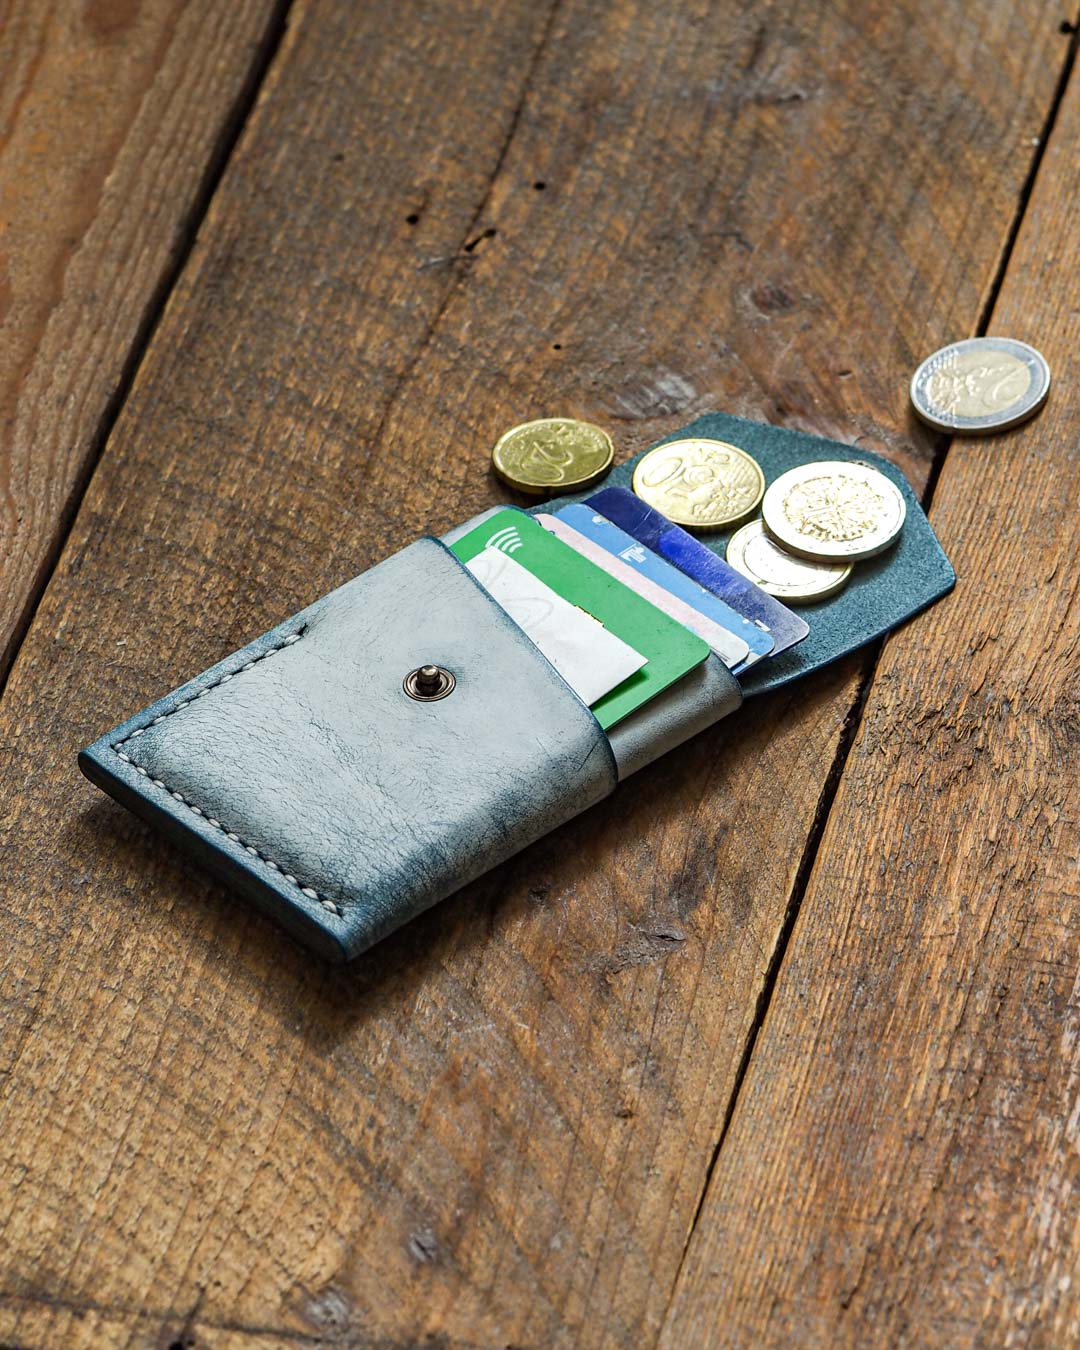 Luava handcrafted leather overfold wallet ghost ocean conceria la bretagna cardholder card holder handmade in finland angle fron open in use